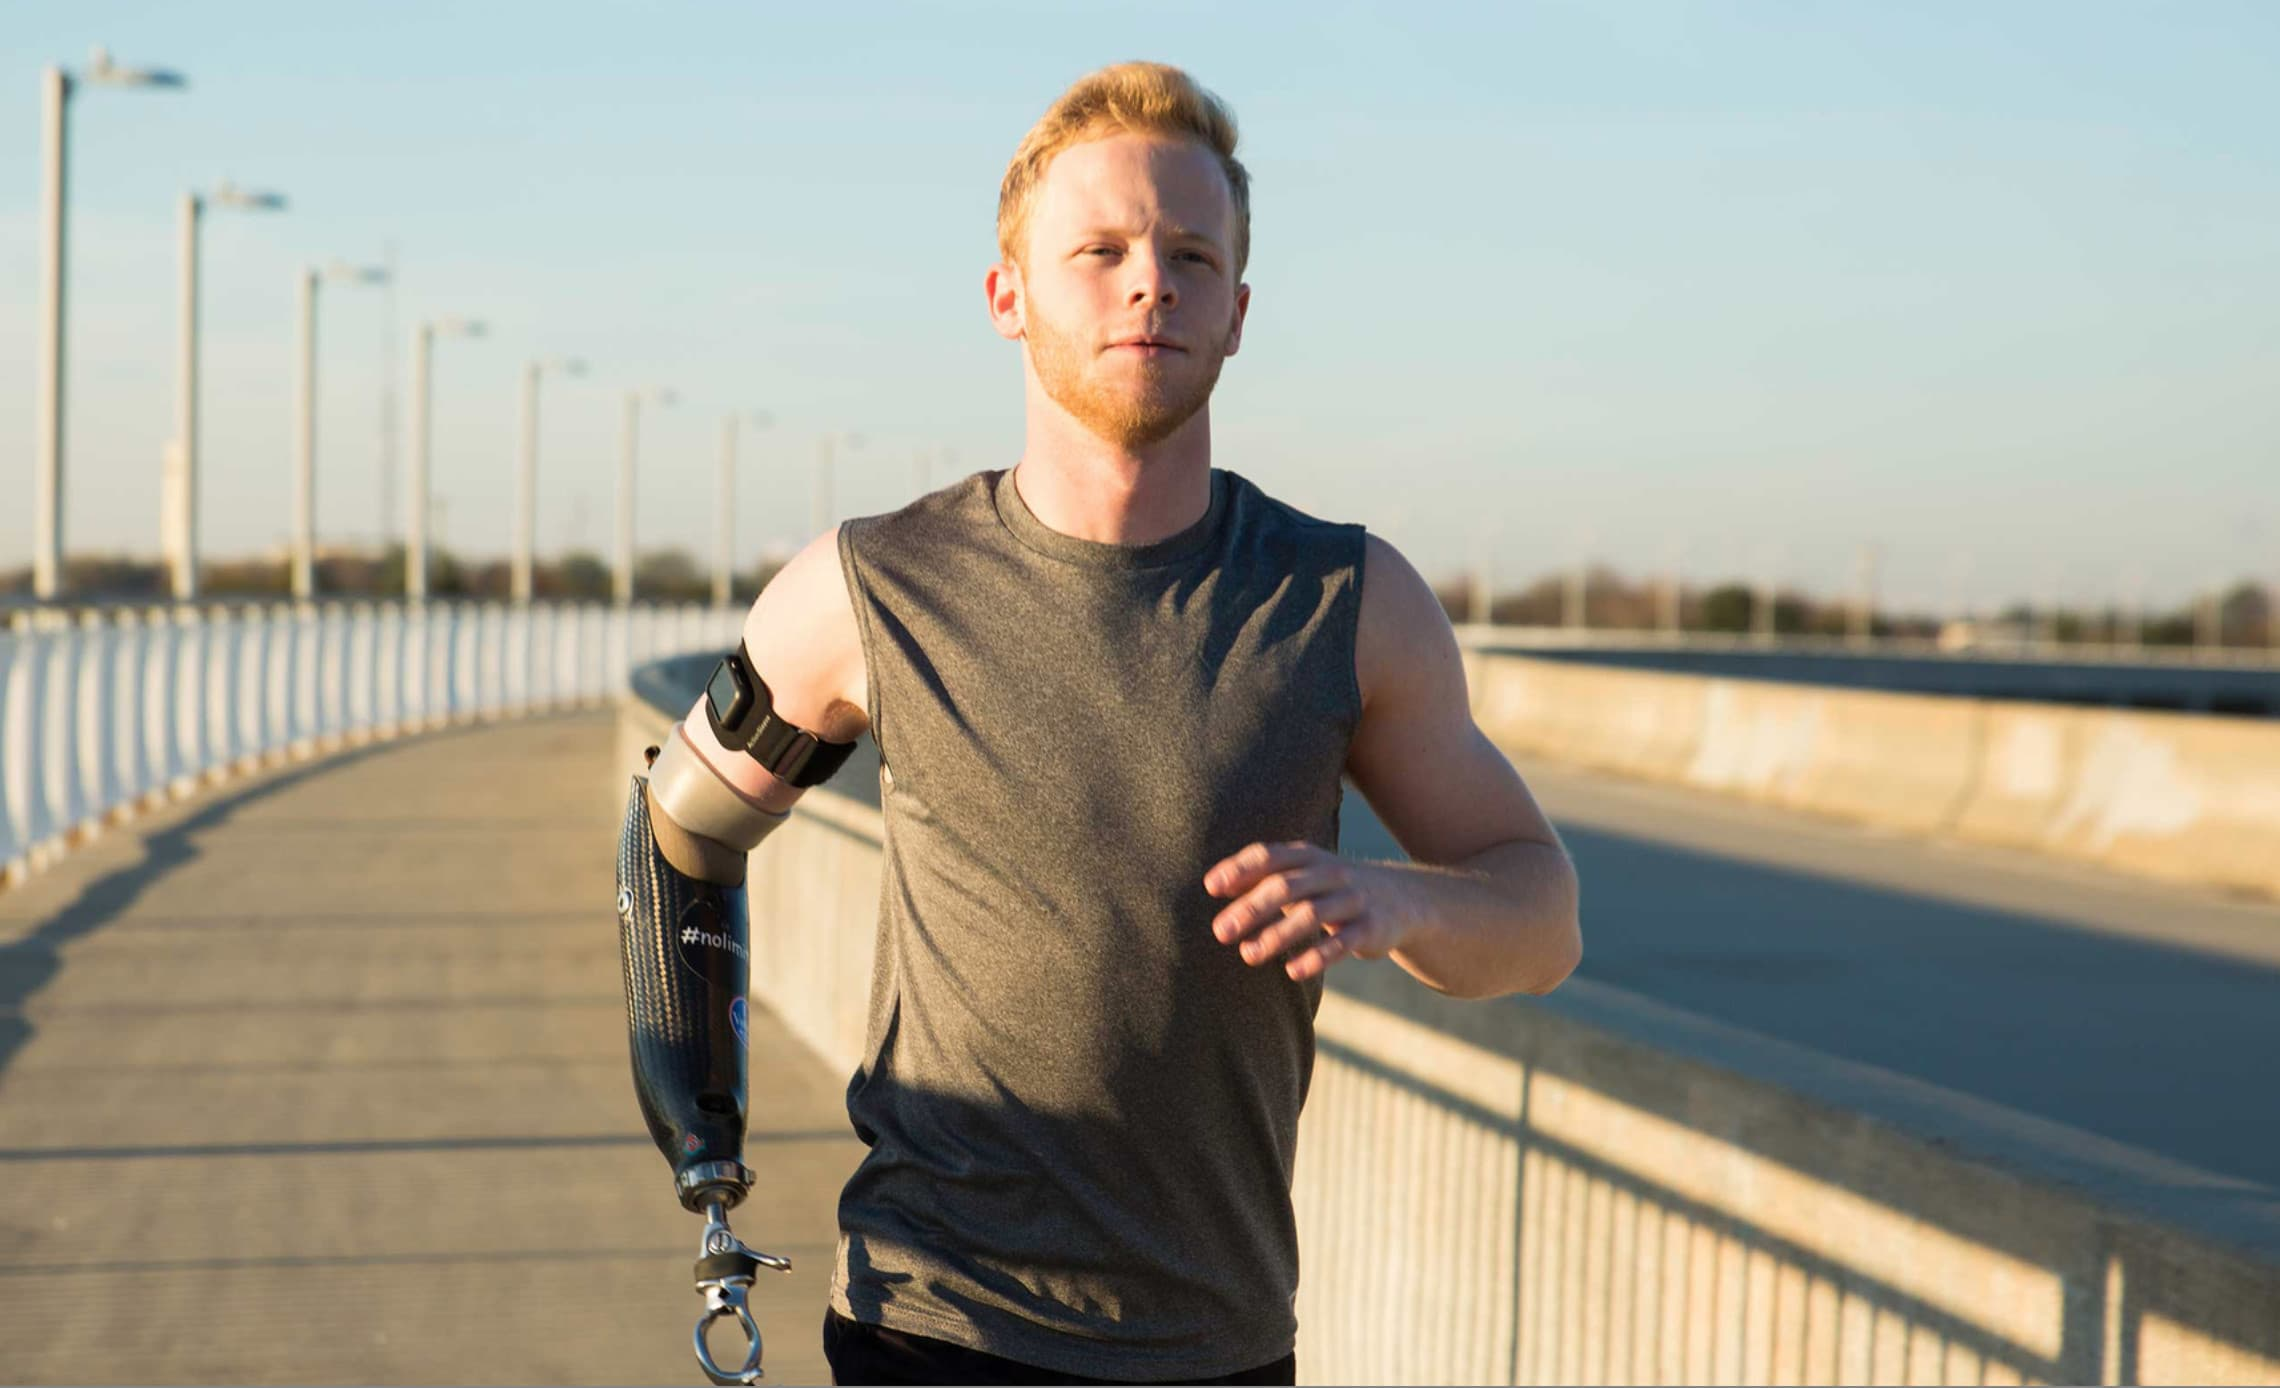 Athletes come in all shapes and sizes and ActionSleeve provides a solution for almost anyone.